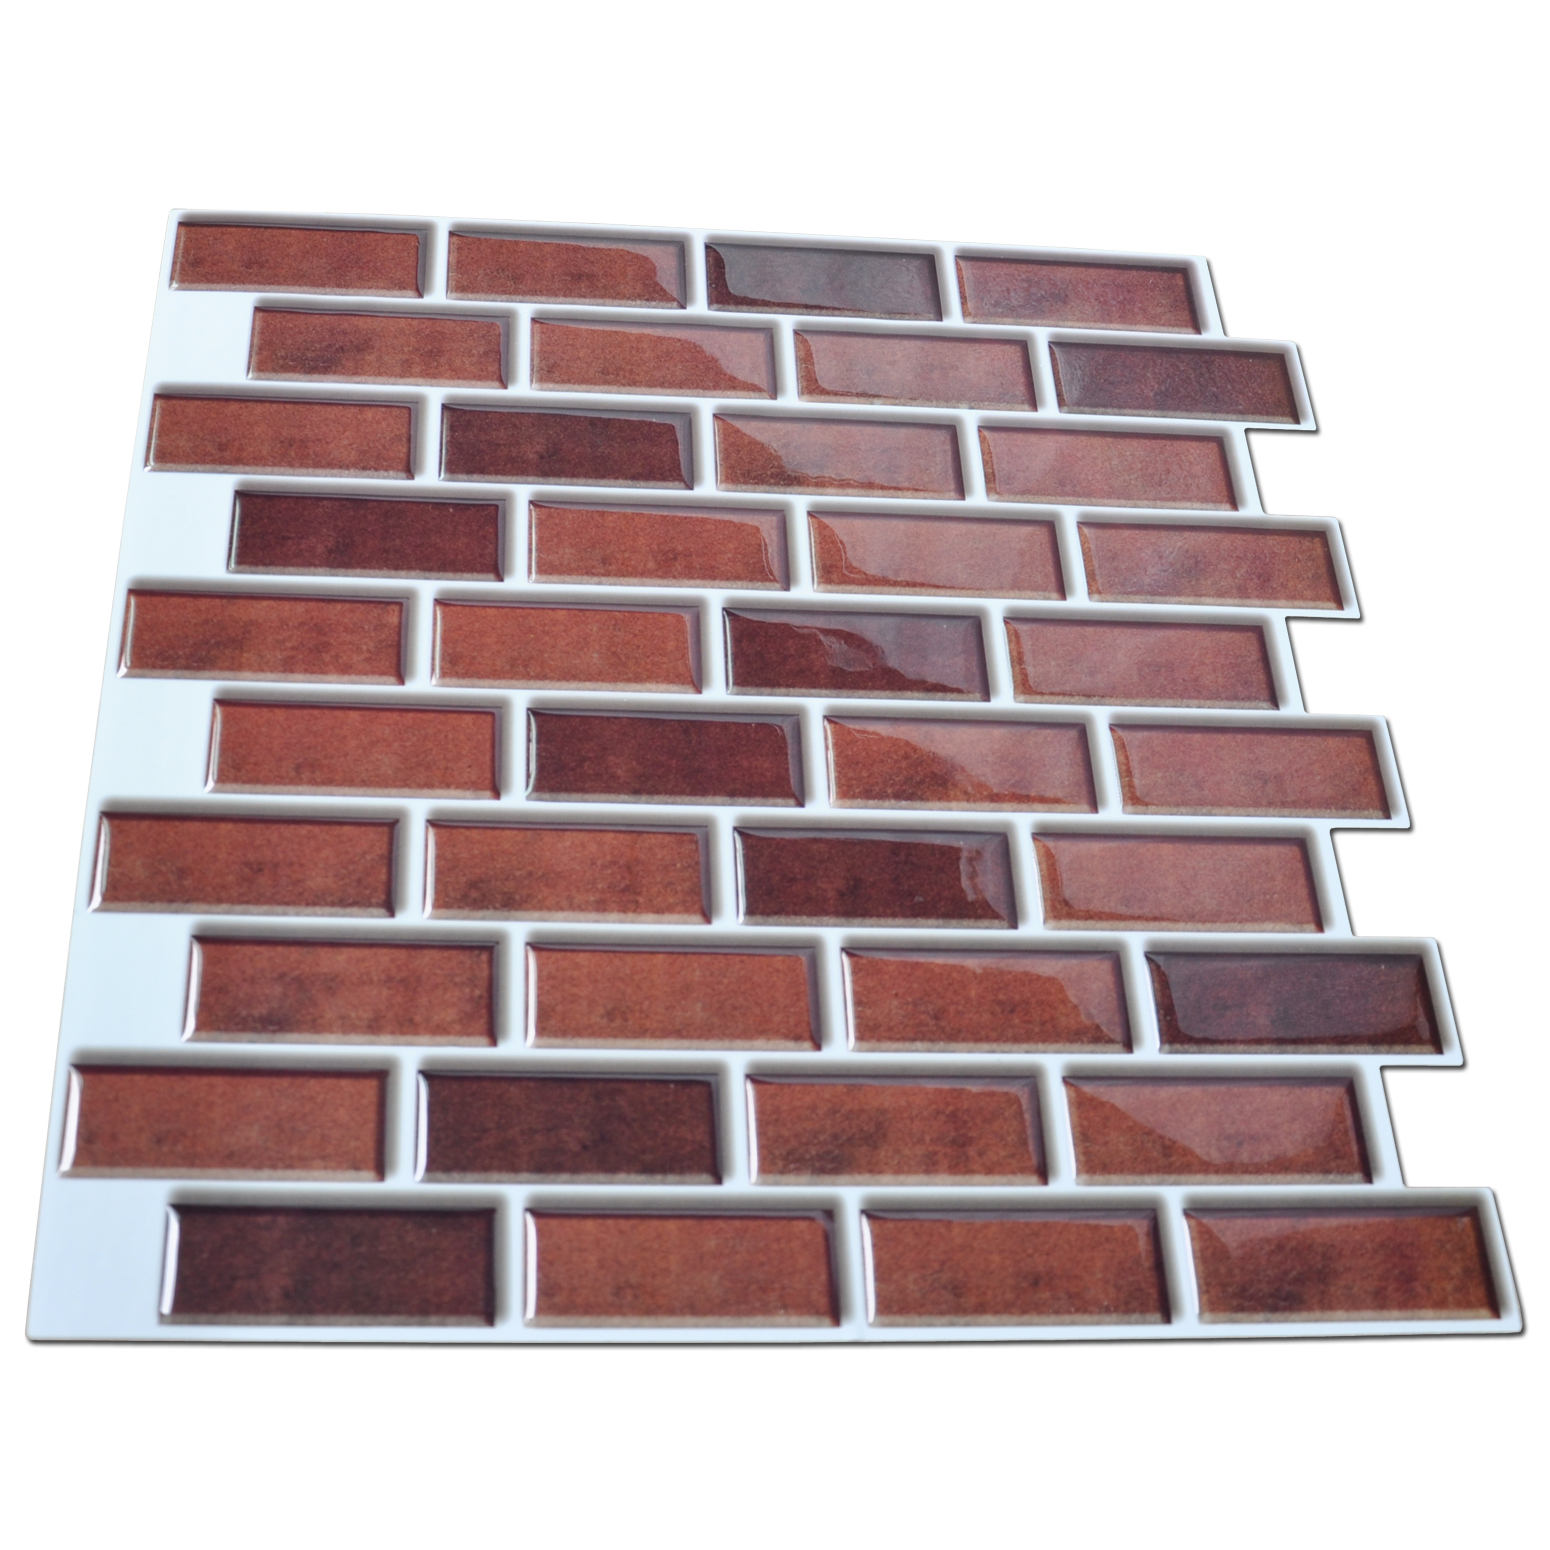 - Peel And Stick Brick Backsplash Tile For Kitchen, 12